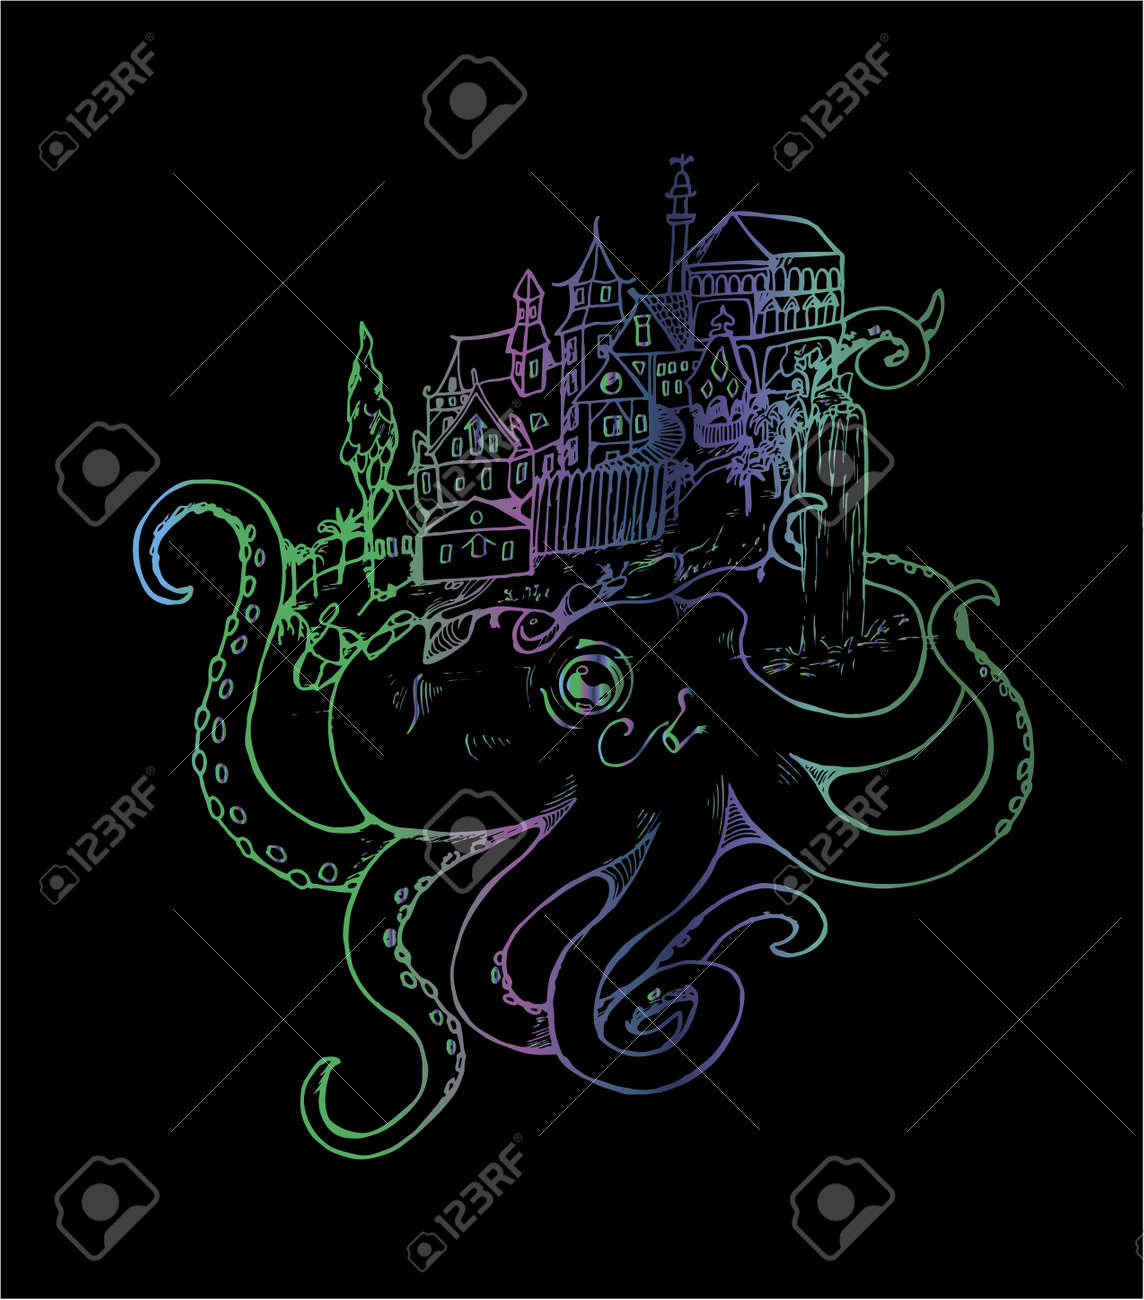 b07f05d6ee3f Illustration of an octopus with an old city. Black and white drawing. Stock  Vector